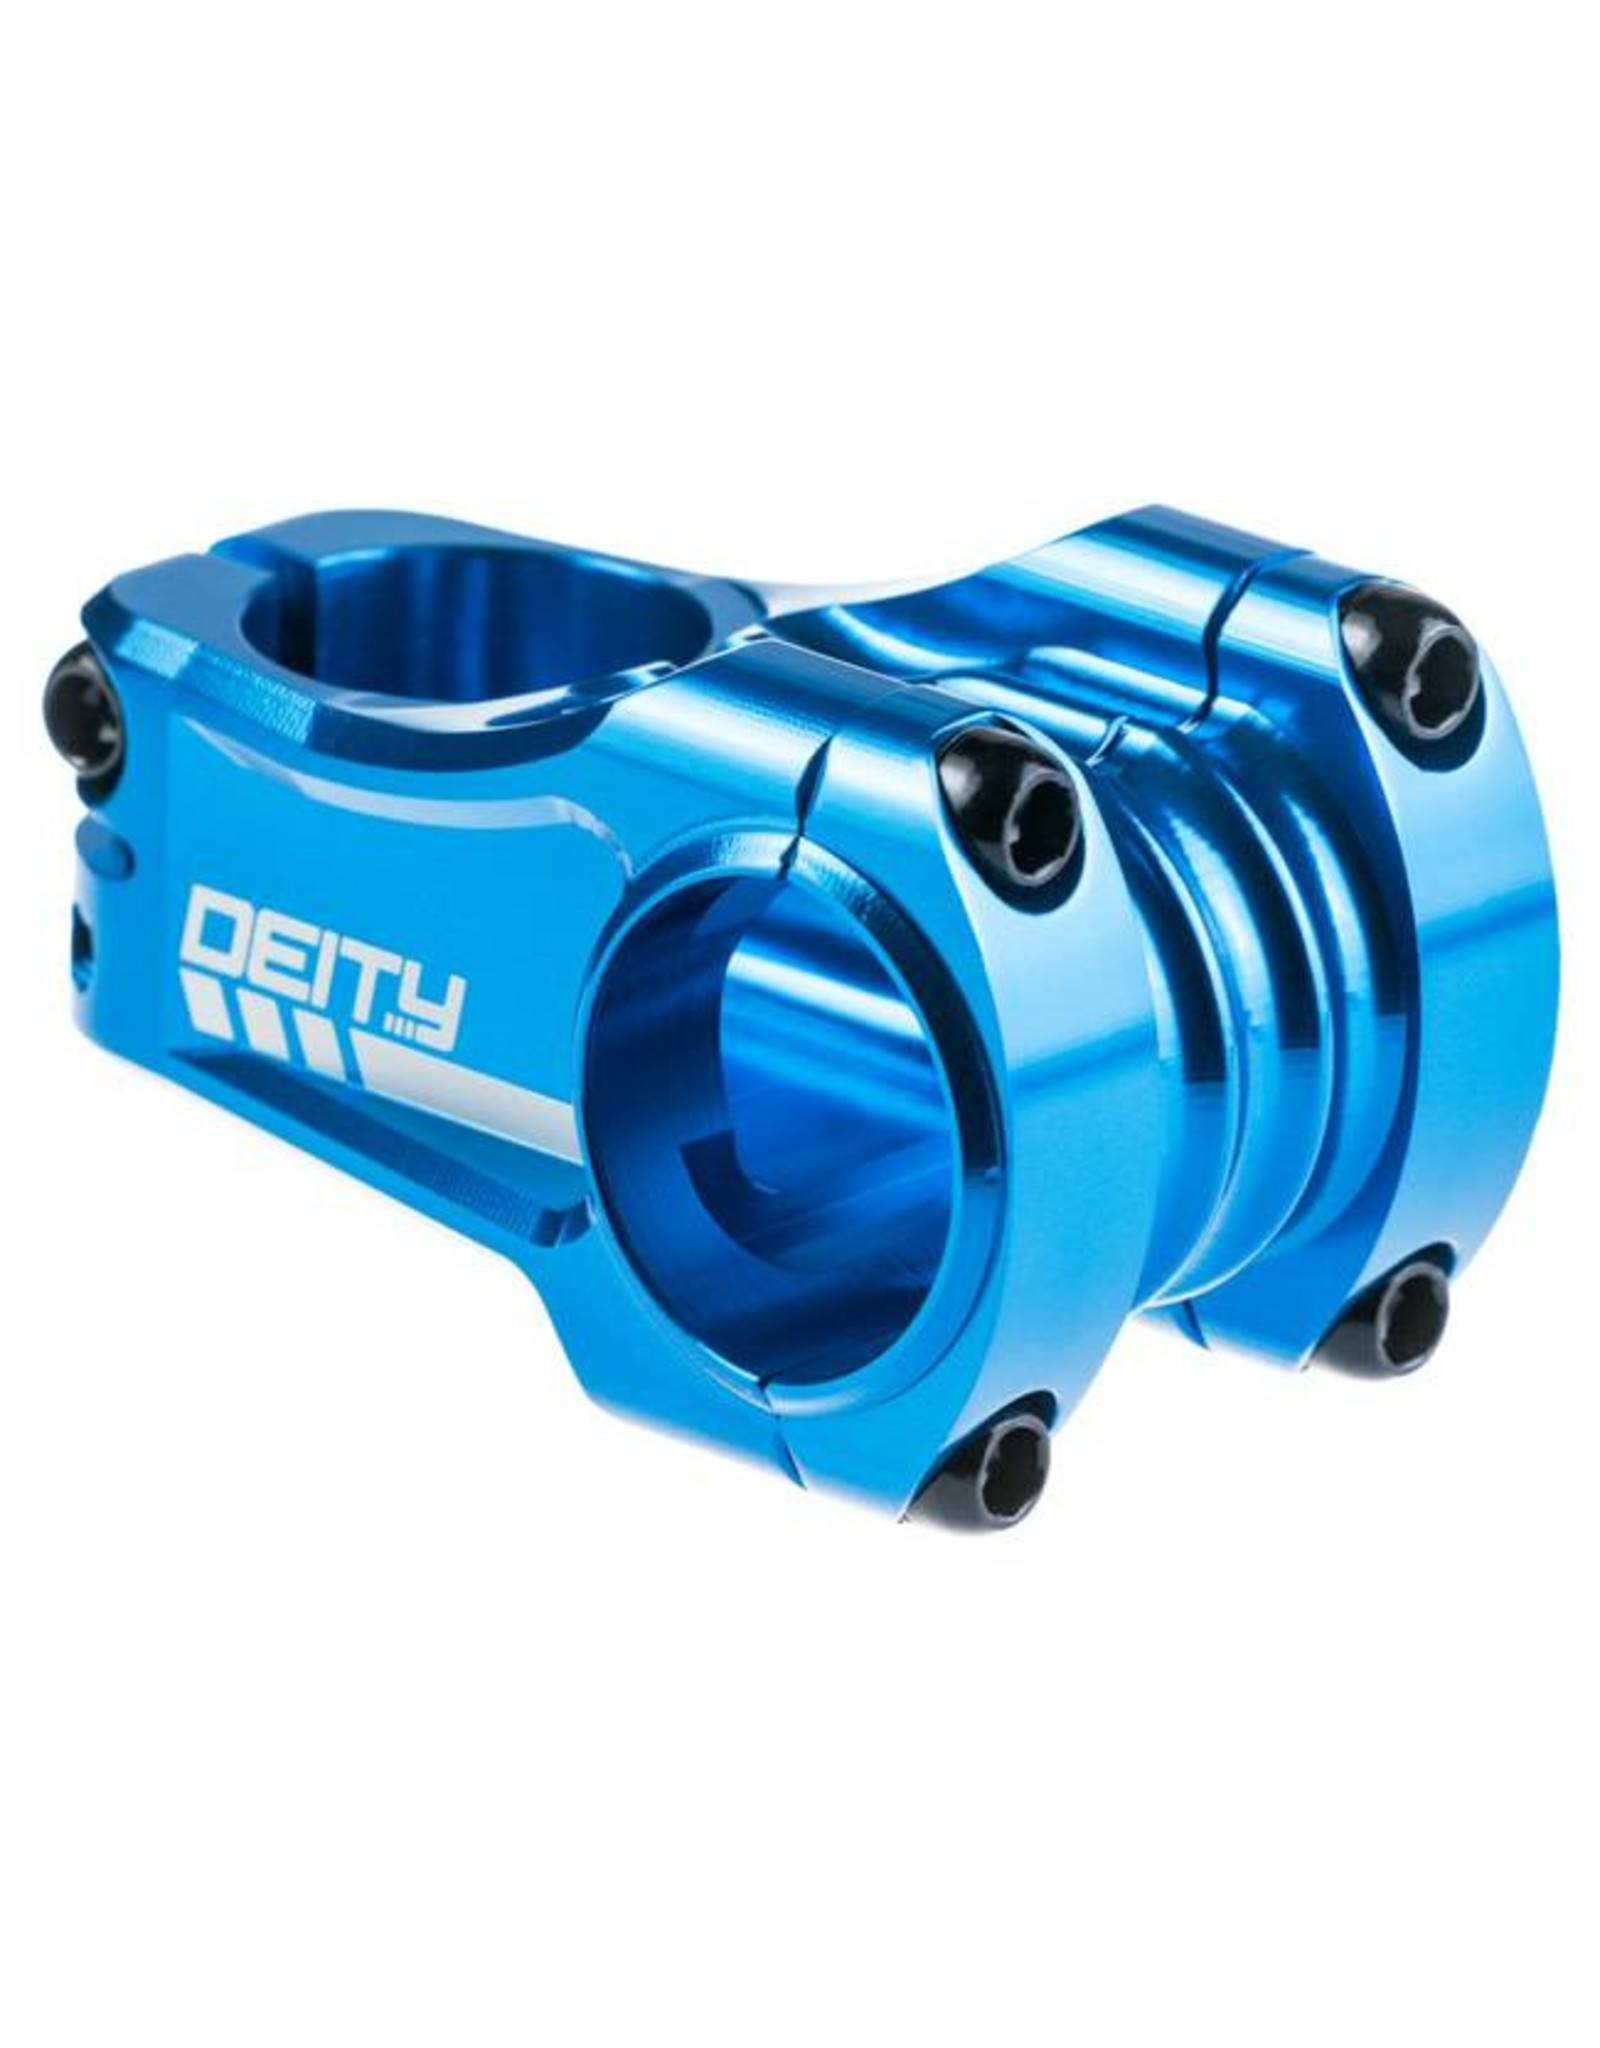 Deity Components Deity Copperhead Stem: 50mm, 31.8 Clamp, Blue